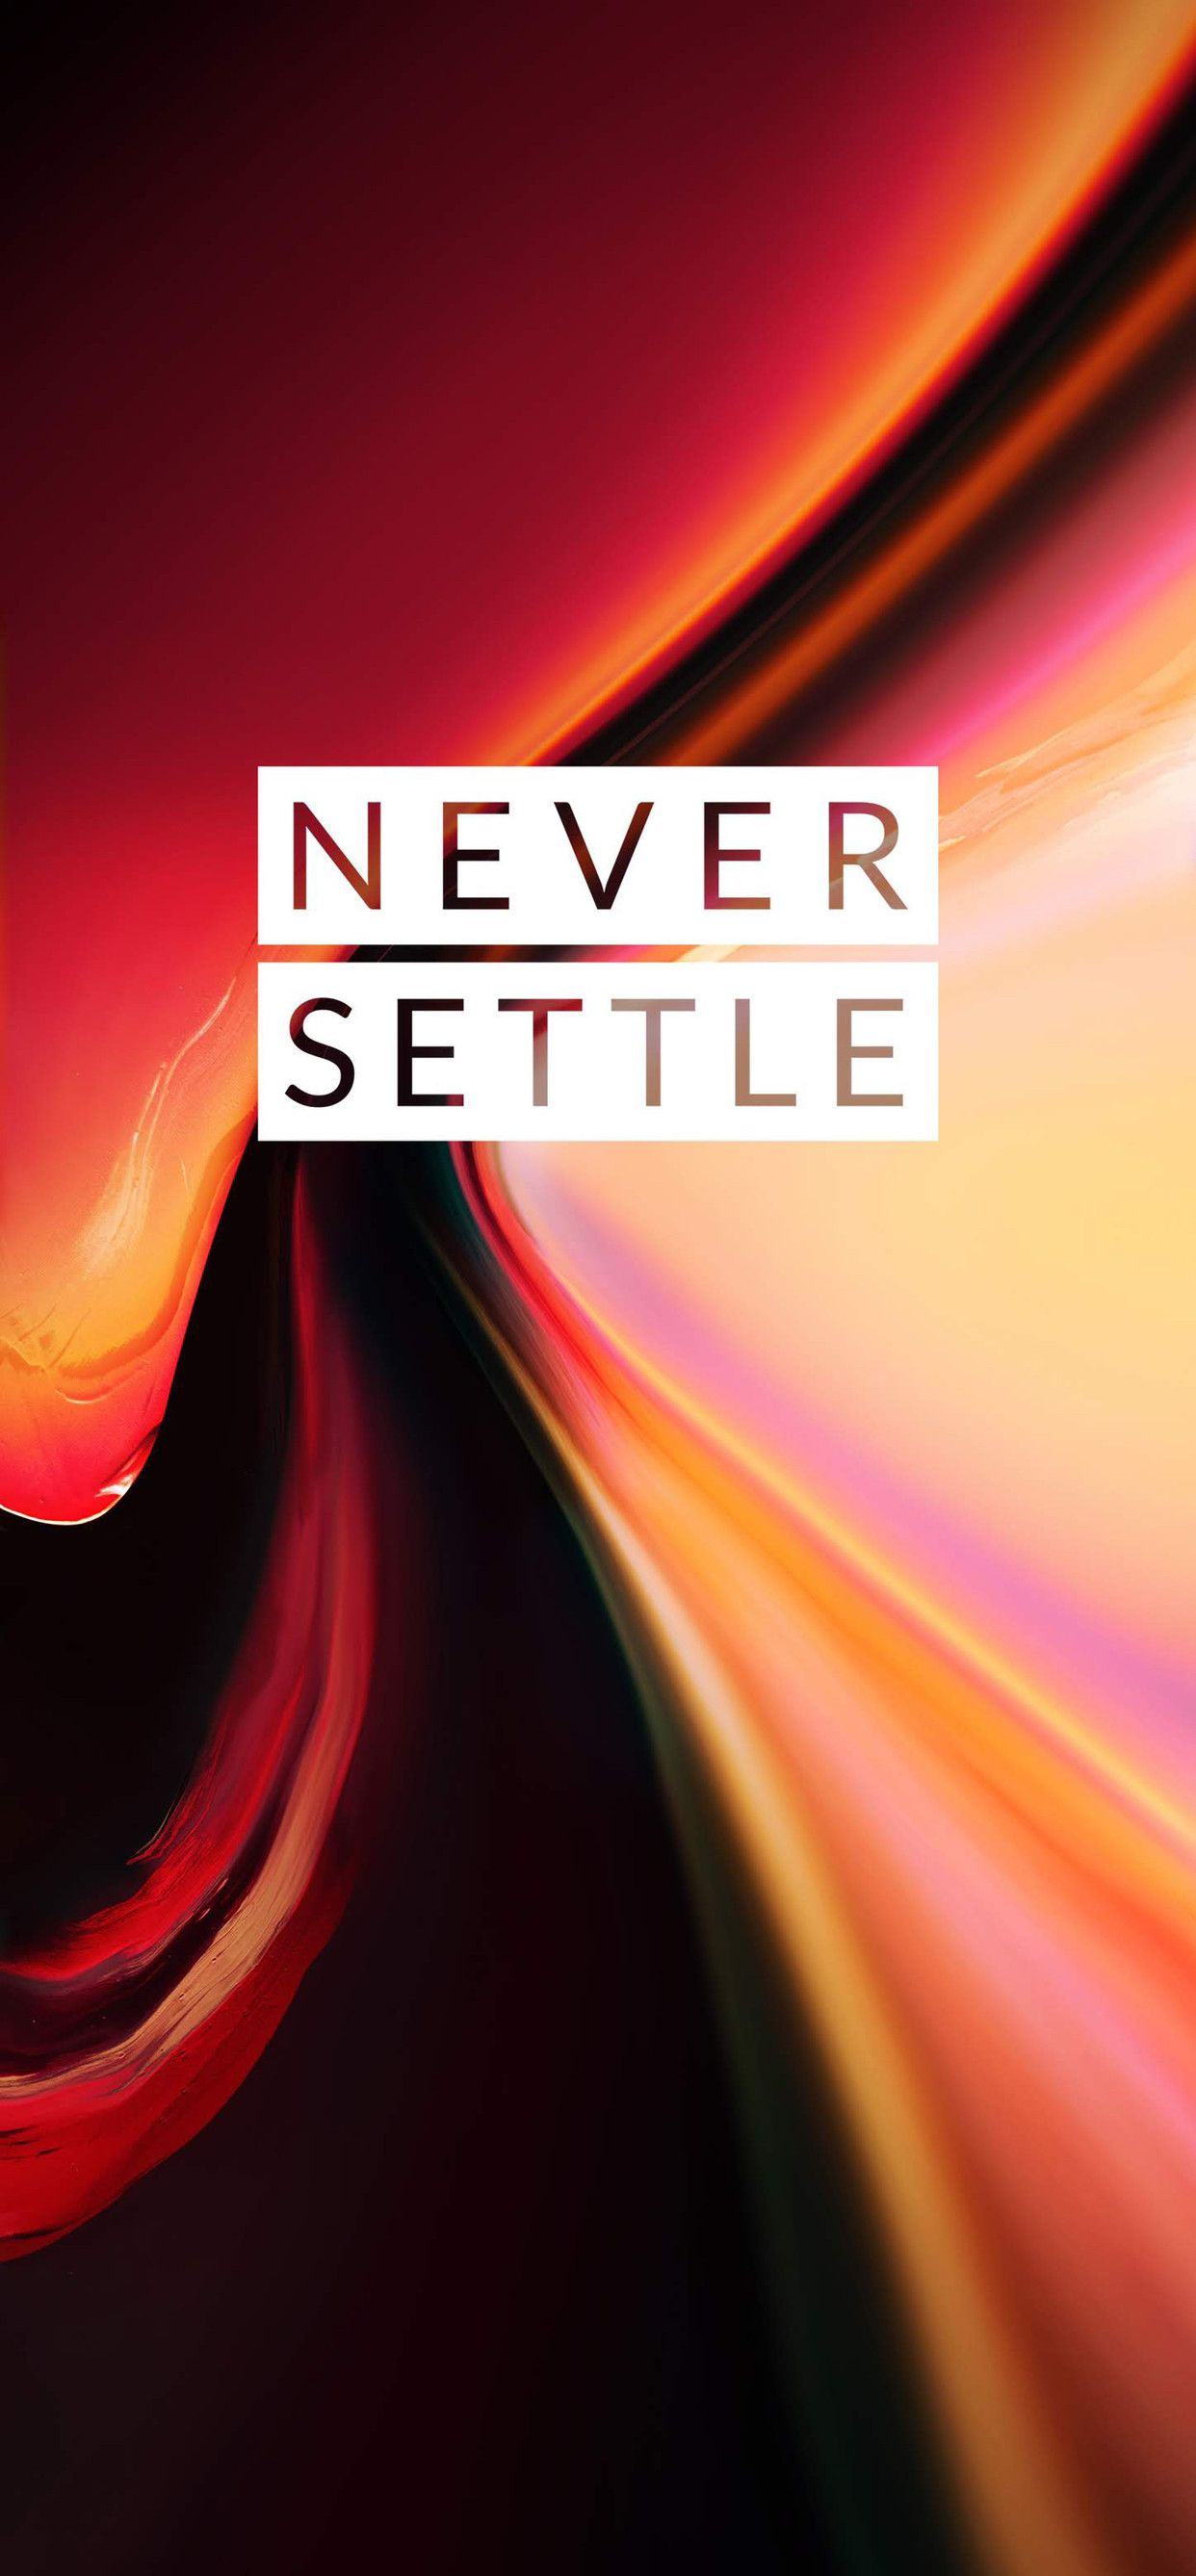 Never Settle OnePlus 7 Pro Oneplus wallpapers, Never